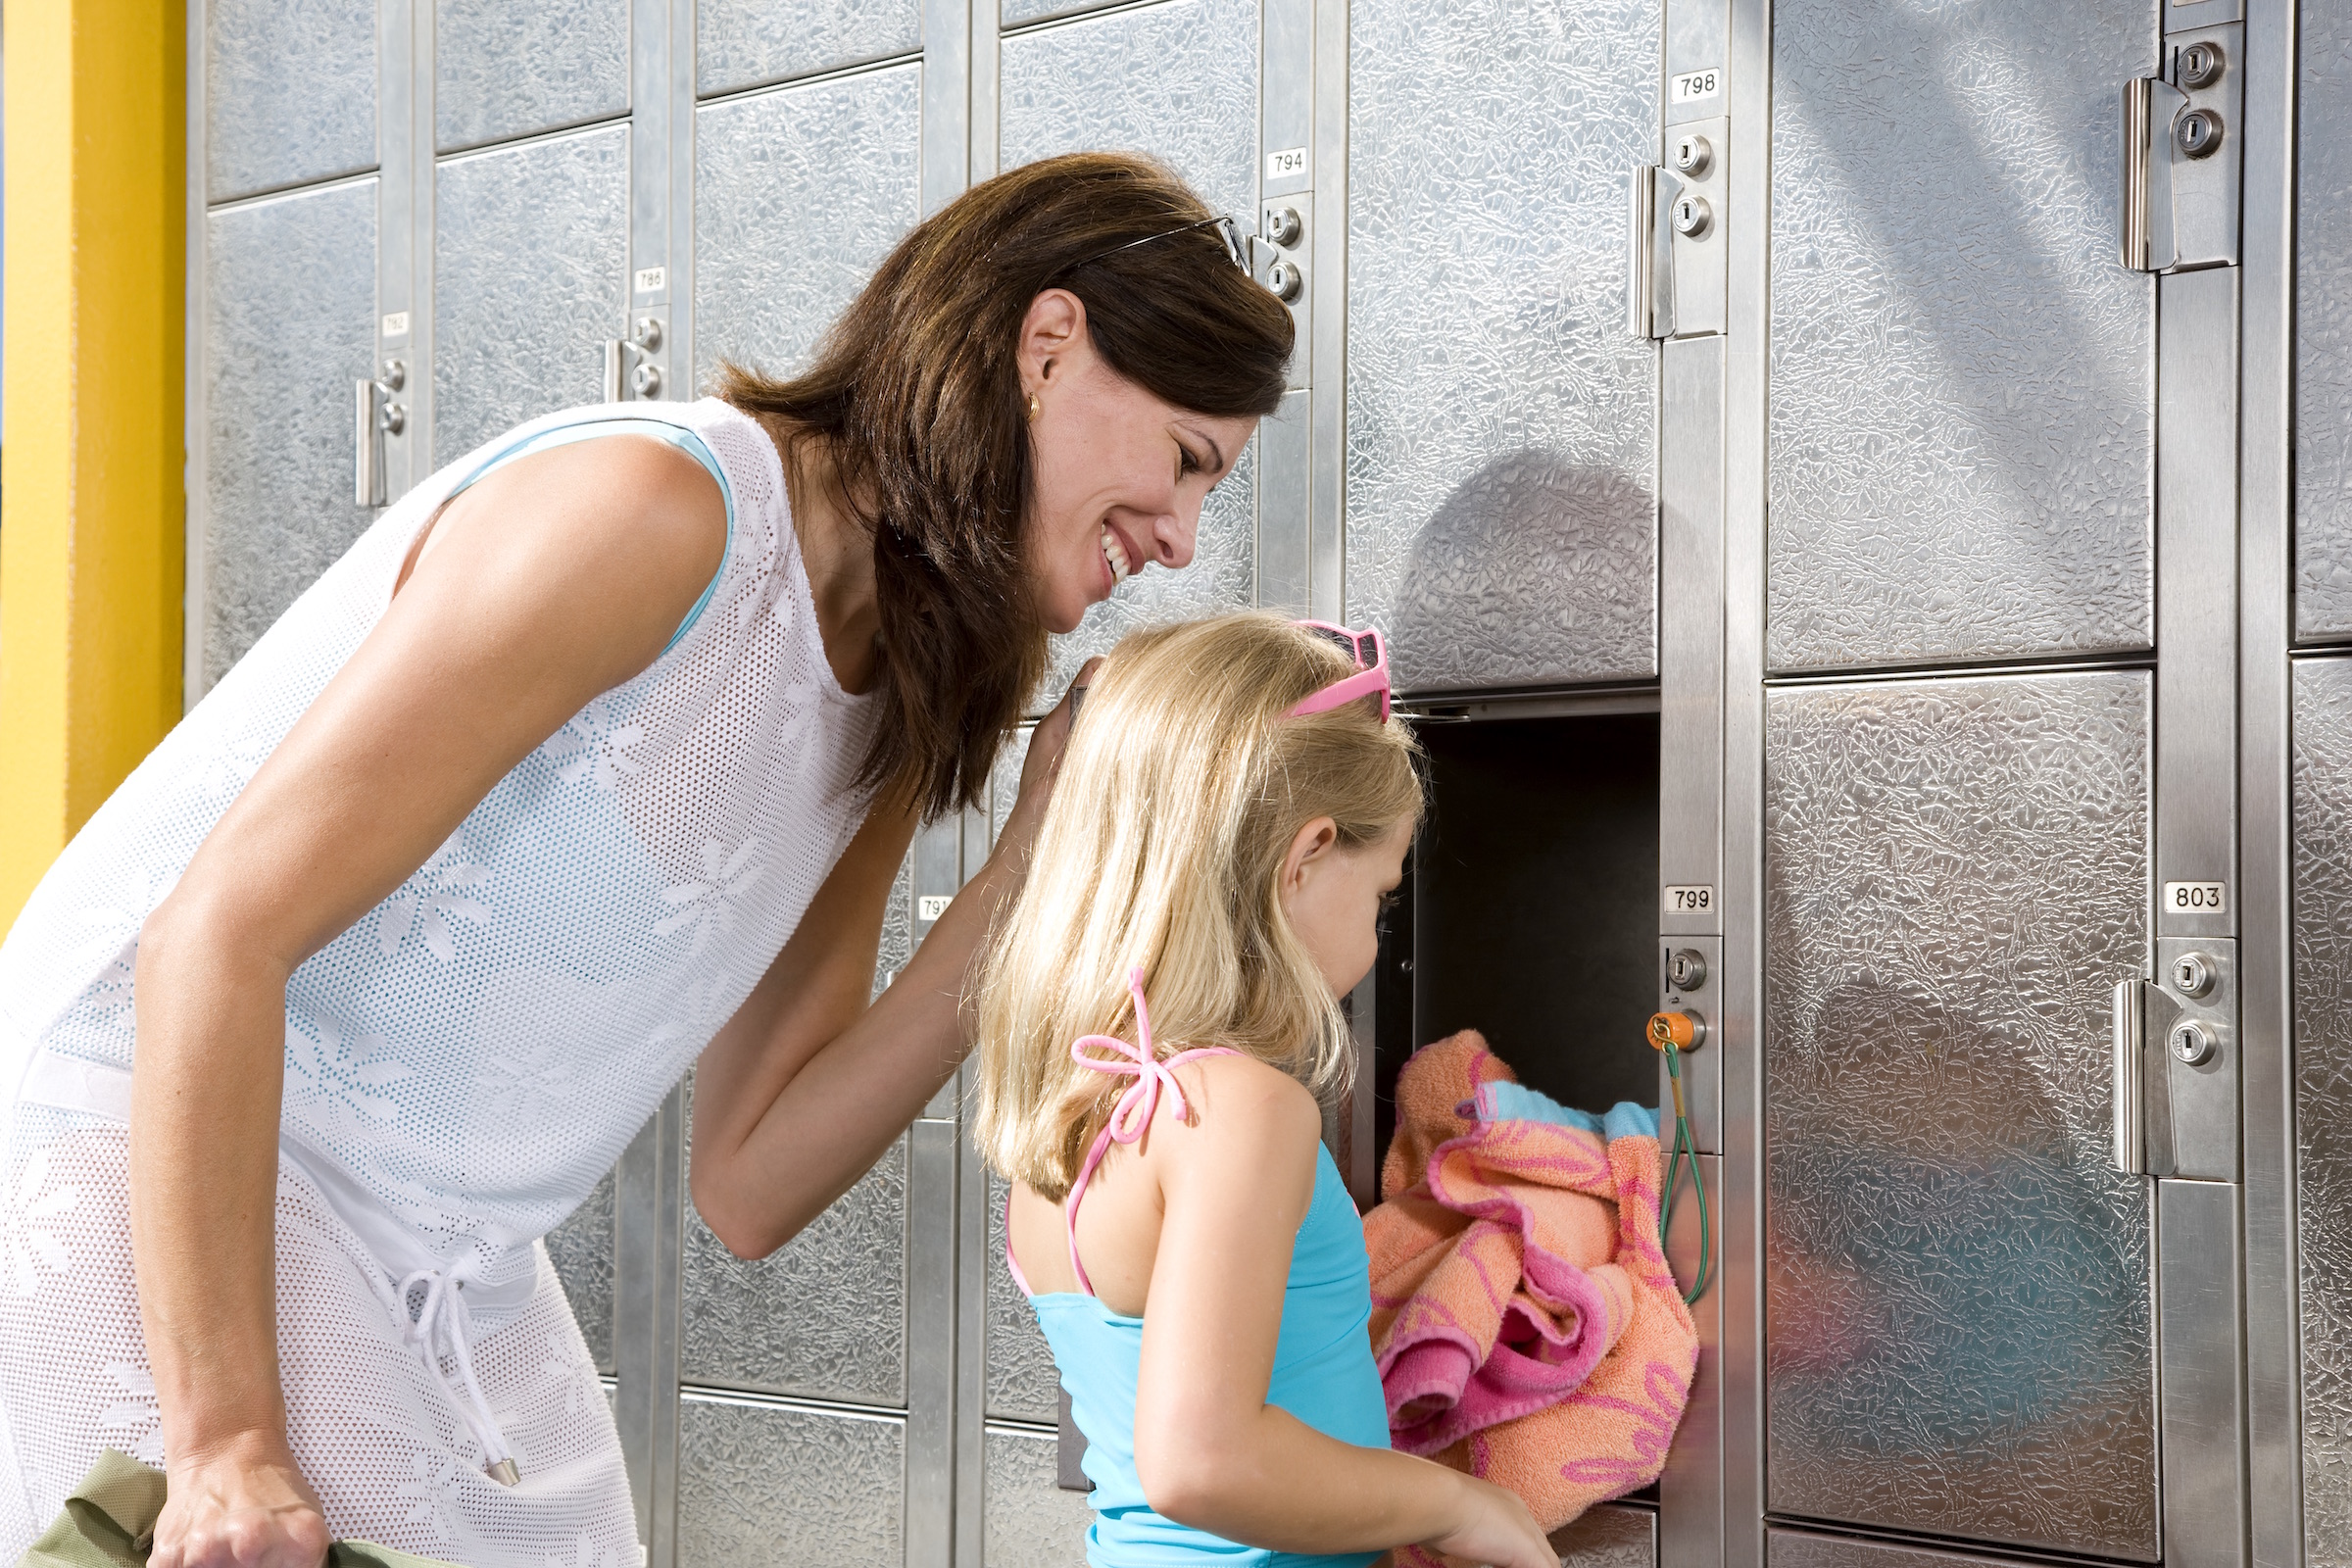 Mother and daughter putting a towel into a statesman keyed locker